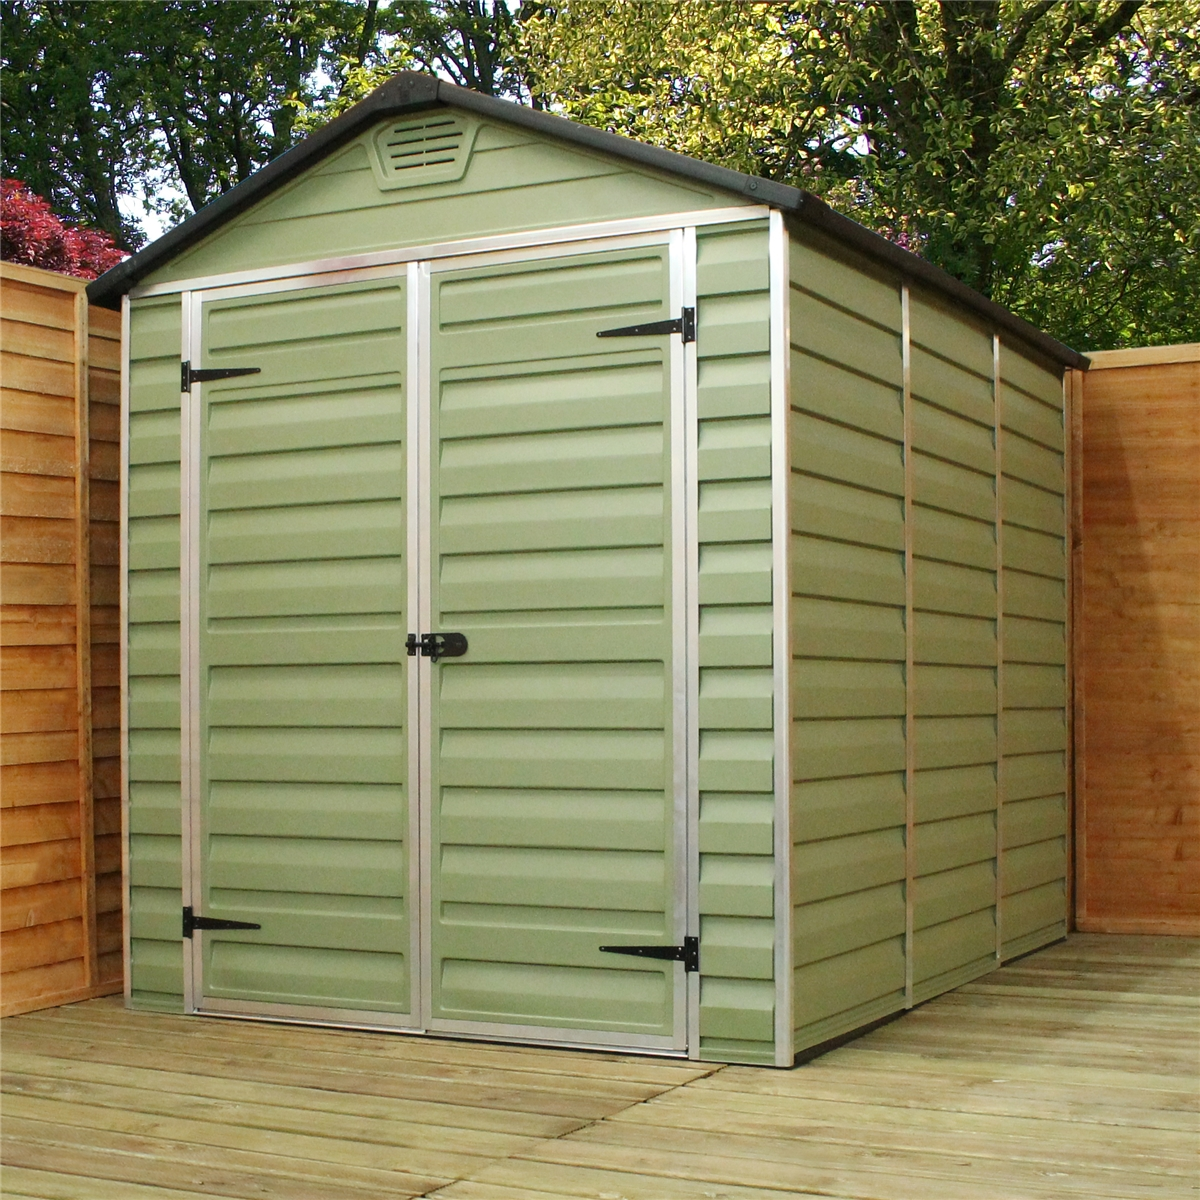 Installed 12 X 6 Plastic Apex Shed 3 65m X 1 88m